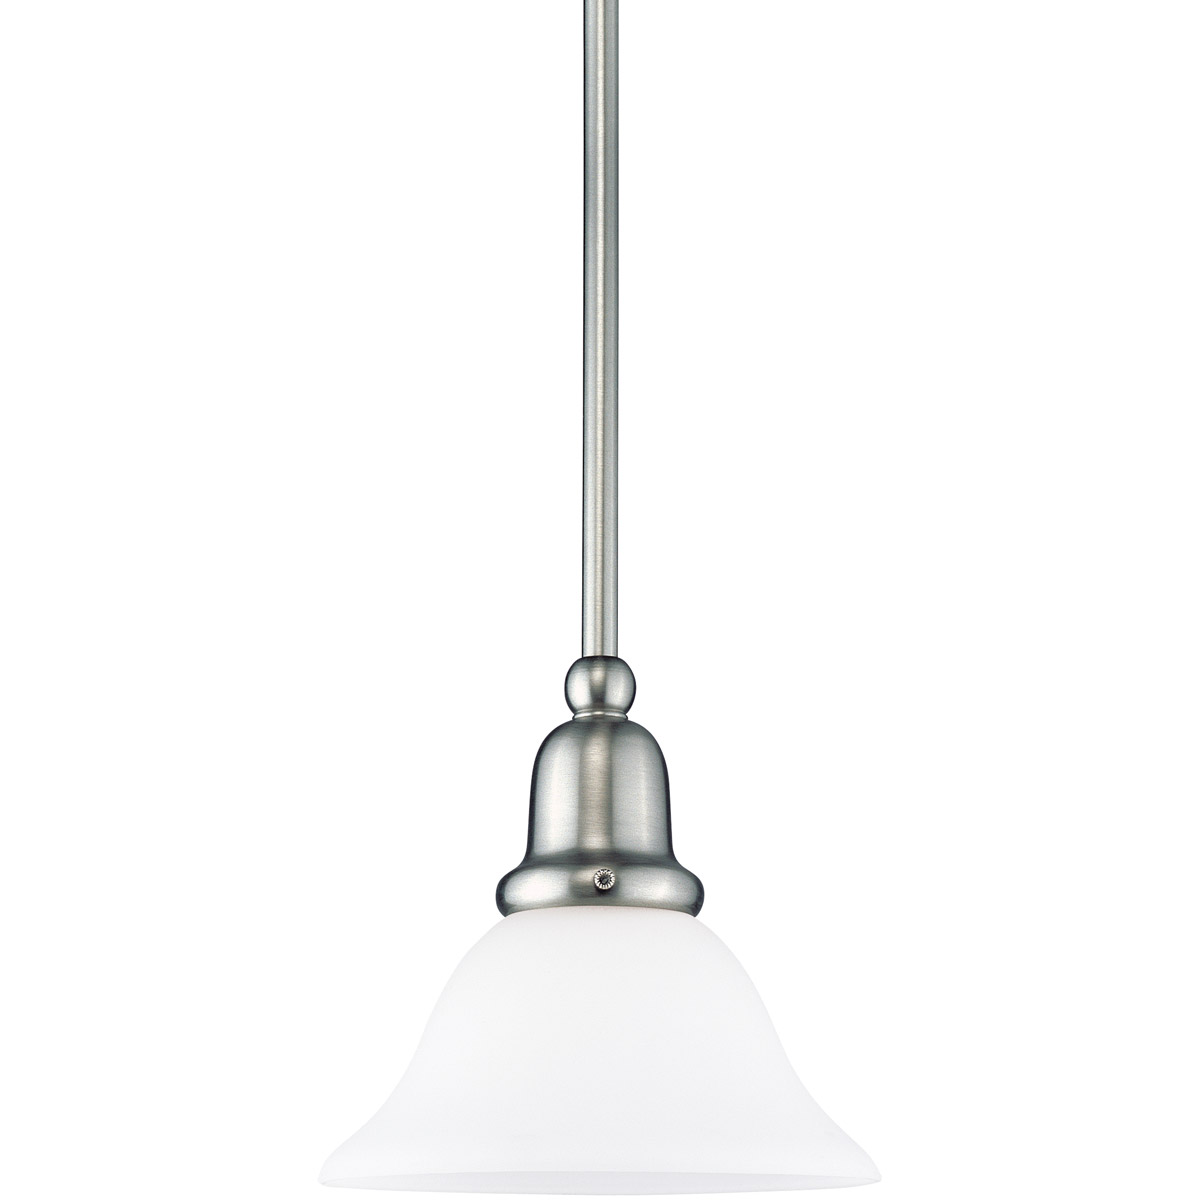 Sea Gull Lighting Sussex 1 Light Mini Pendant in Brushed Nickel 61060-962